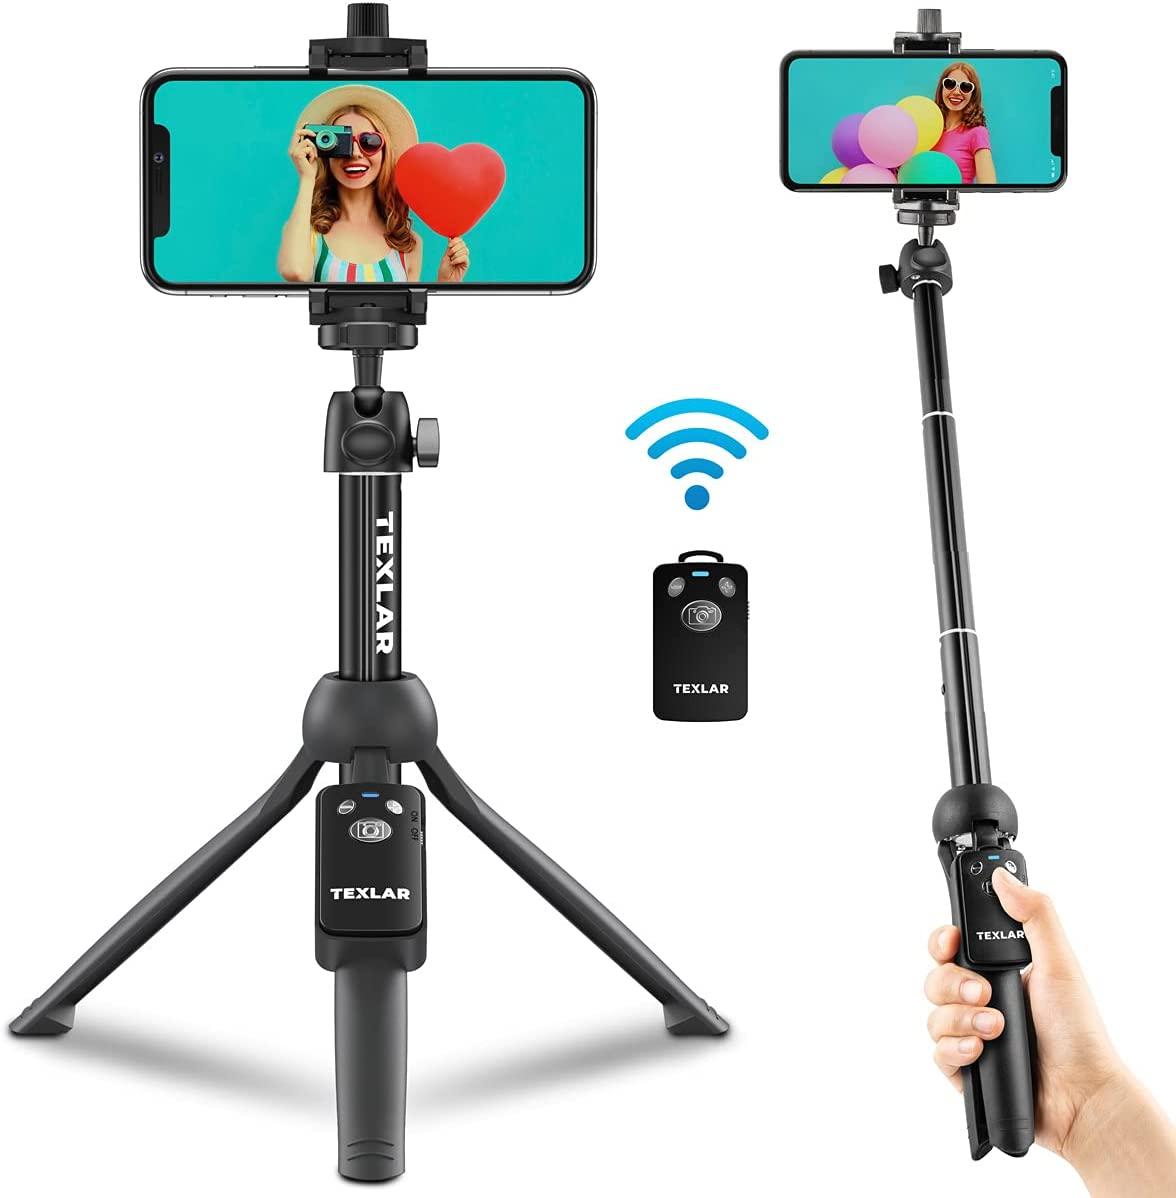 Free shipping anywhere in the nation Texlar Selfie Stick Tripod TS48 Pro - El Paso Mall Remote Extendable with to